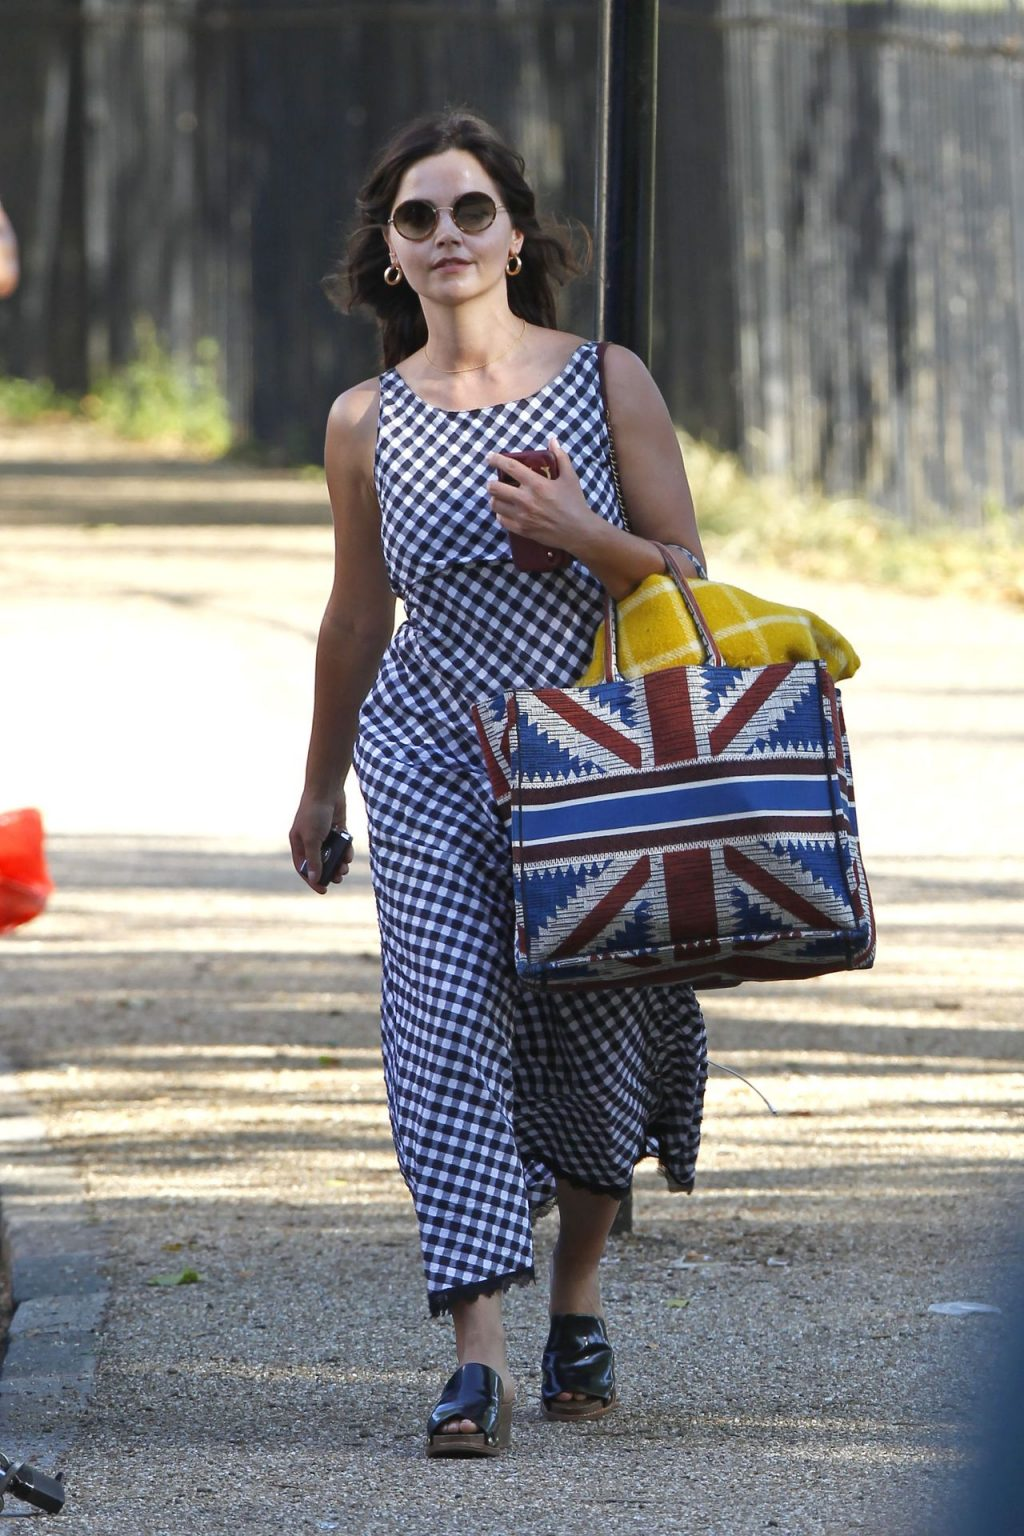 Jenna Coleman Is Spotted At a London Park With a Friend (49 Photos)